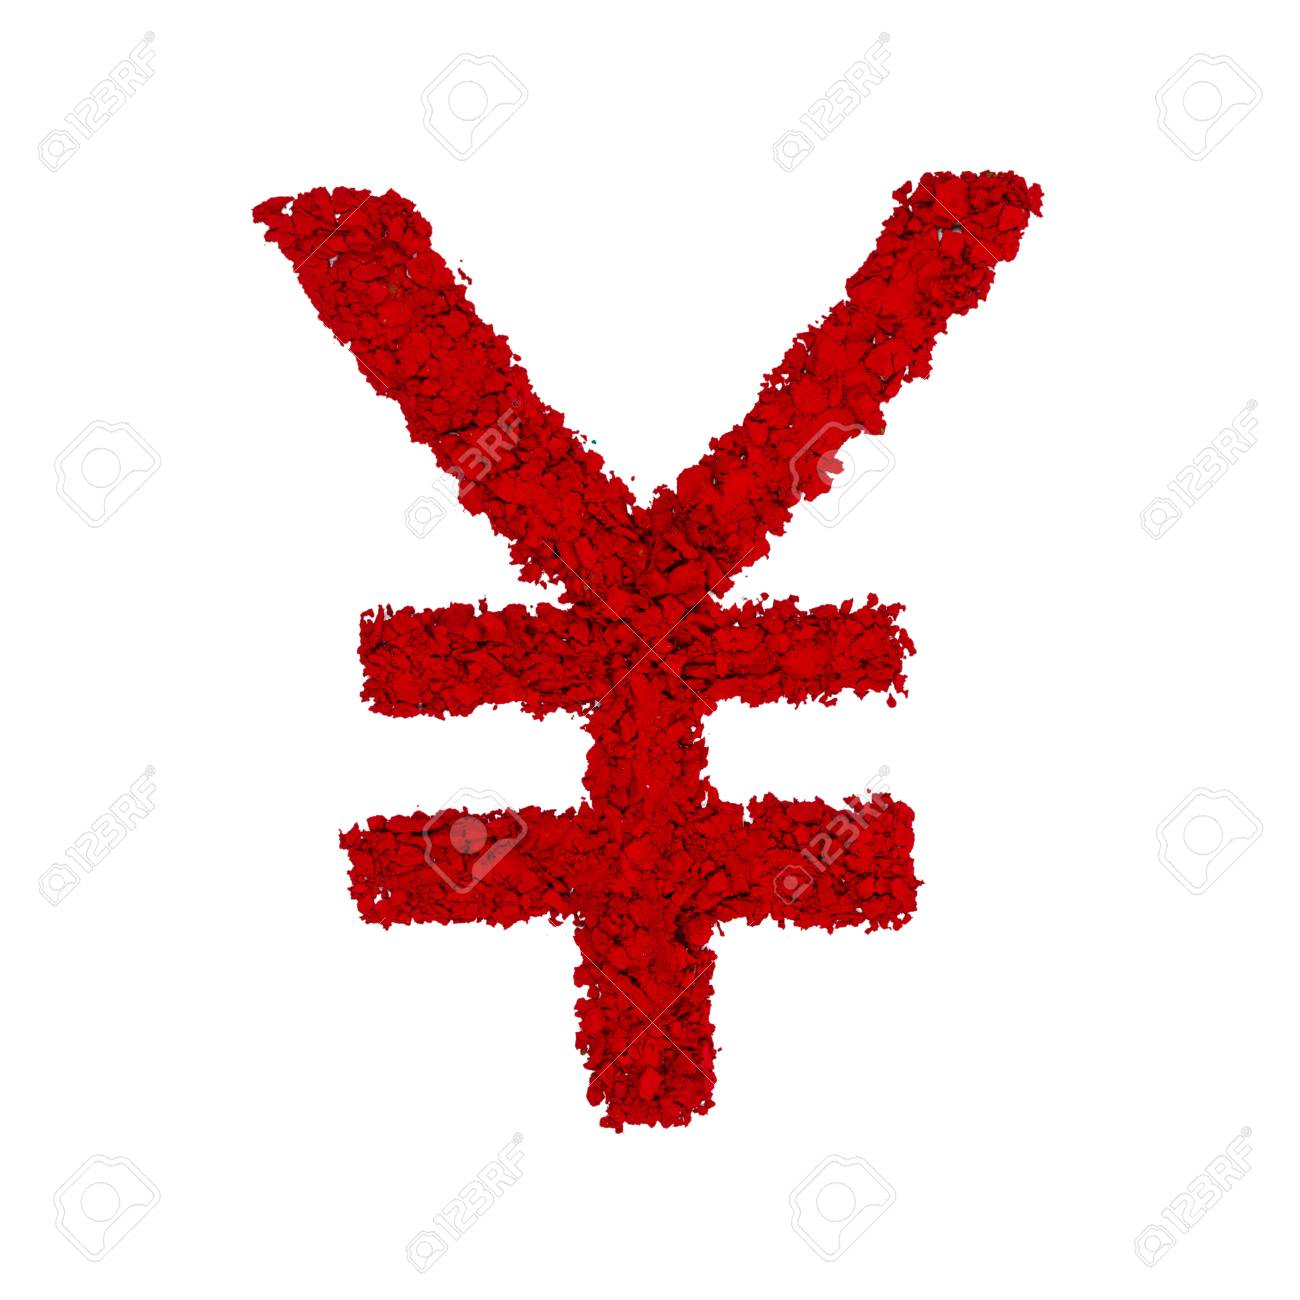 Japanese yen symbol made with red color powder isolated on a japanese yen symbol made with red color powder isolated on a white background banque biocorpaavc Choice Image